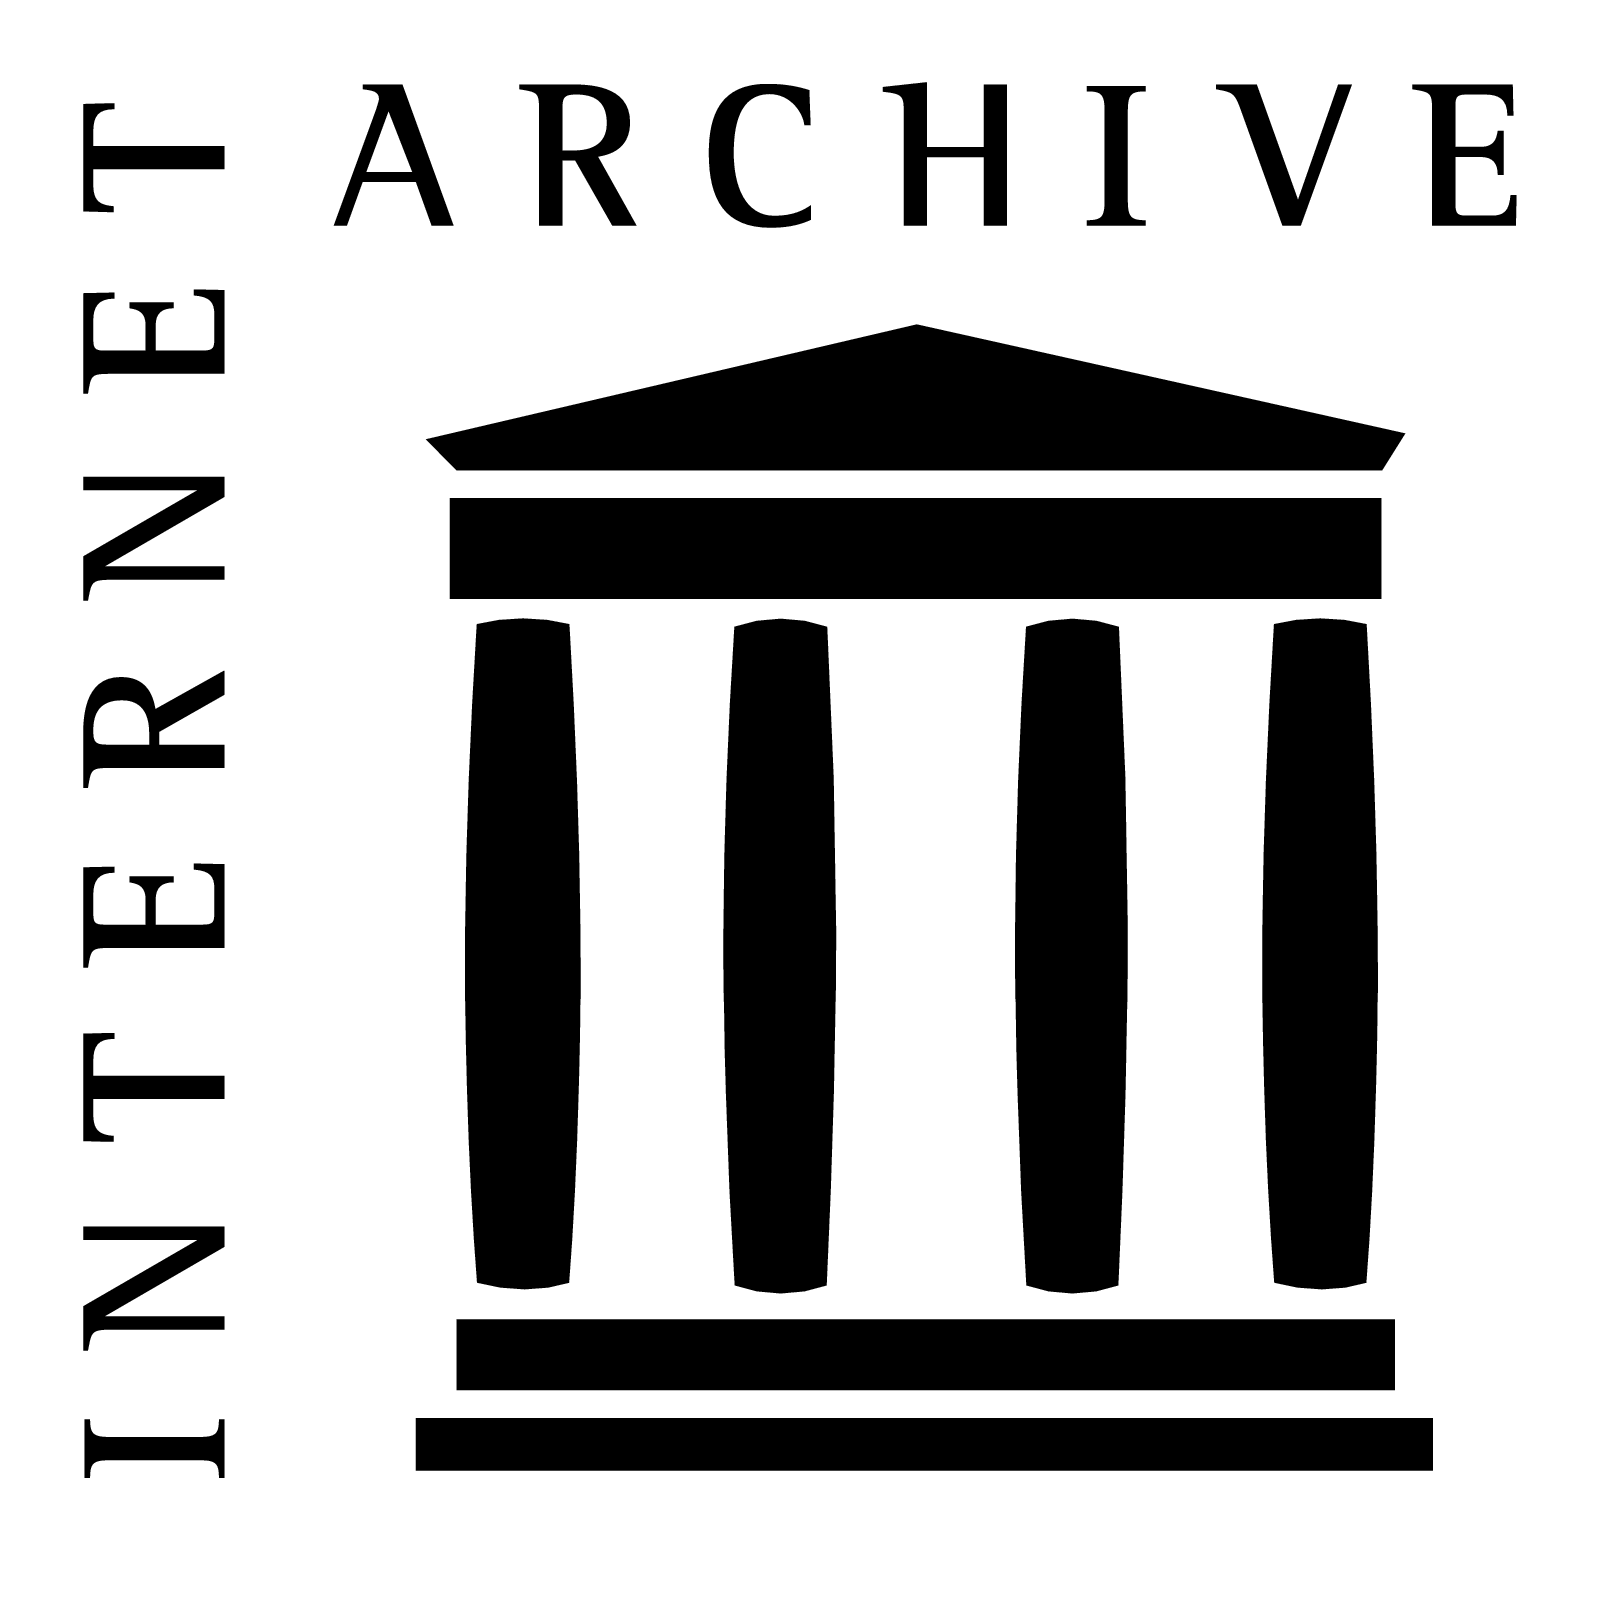 Page 1 | Free Movies by Archive.org. Published by Trony on Wednesday, 03 February 2016 in Visual Art (Design's Factory)